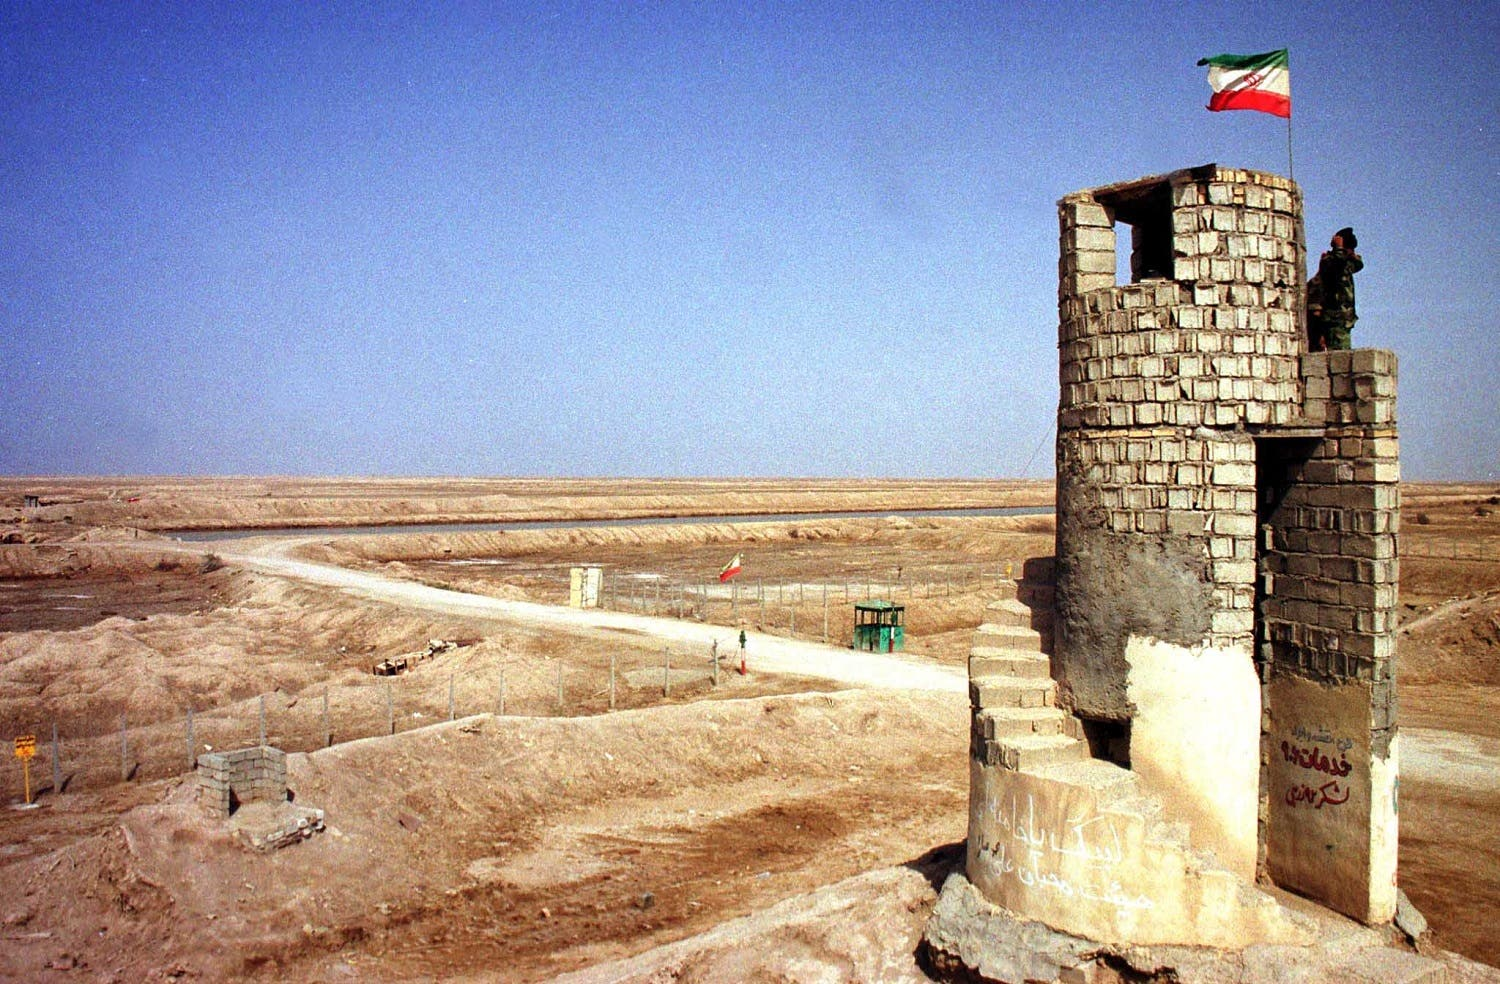 An Iranian soldier looks at Iraqi territory from a watch tower in Shalamcheh, southwestern Khuzestan province, on March 23, 2003. (File photo: Reuters)